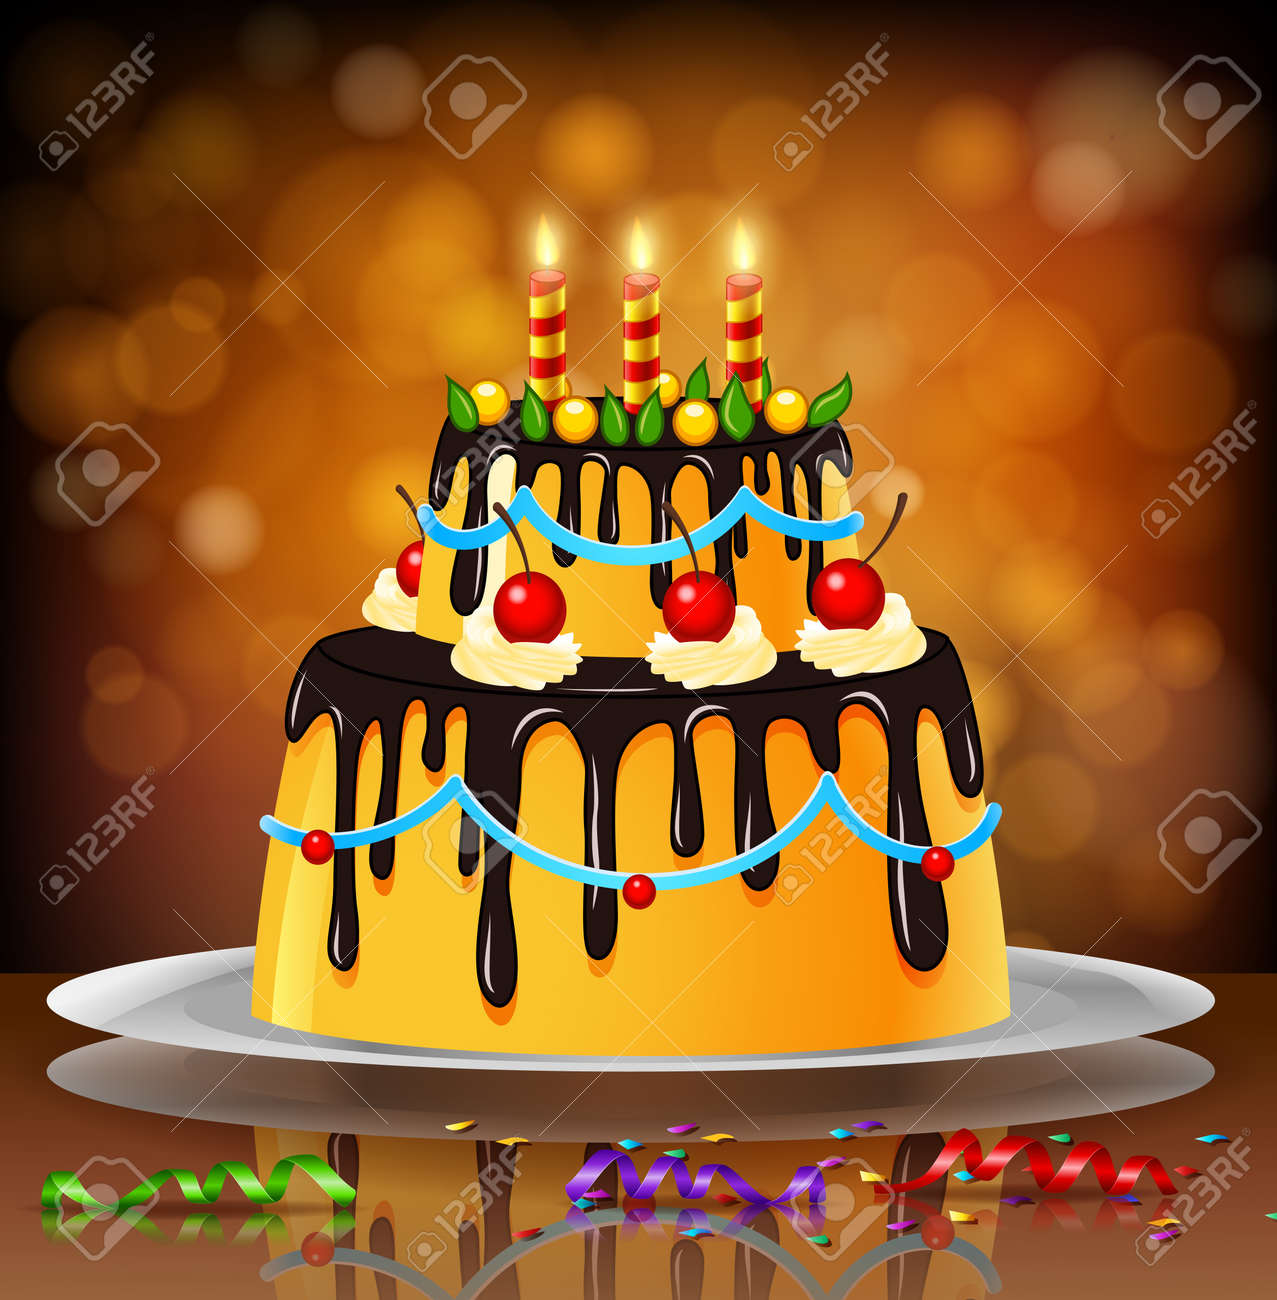 Beautiful Happy Birthday Cake On Artistic Background Royalty Free